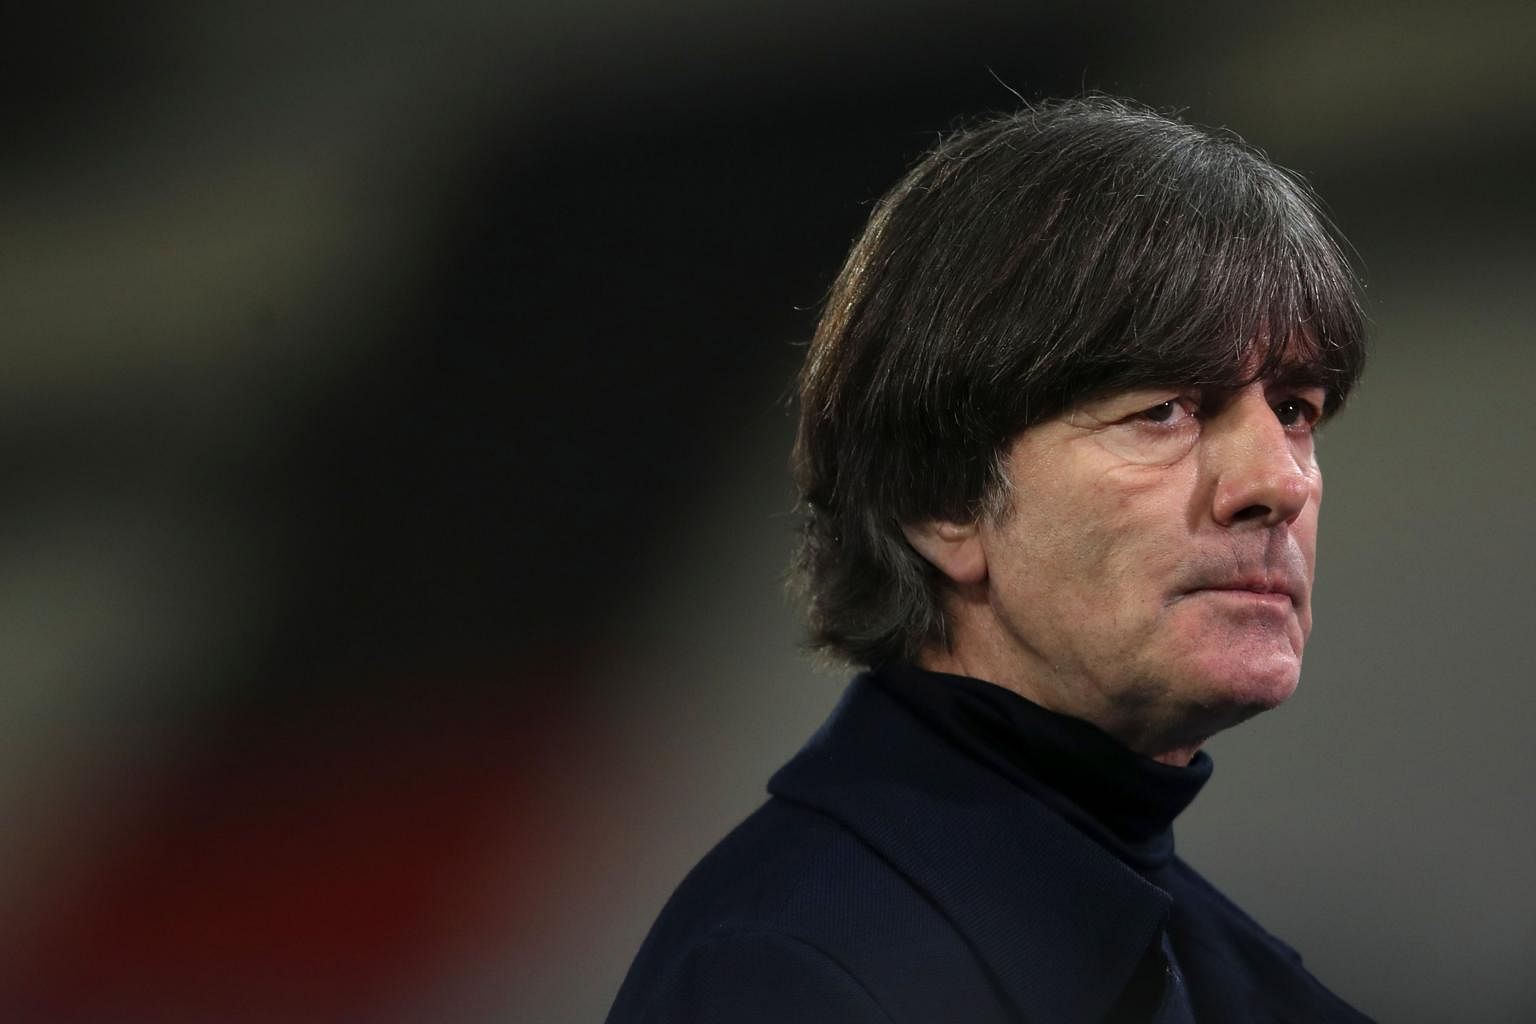 Football: Germany turns on coach Joachim Loew after Spain debacle, Football  News & Top Stories - The Straits Times